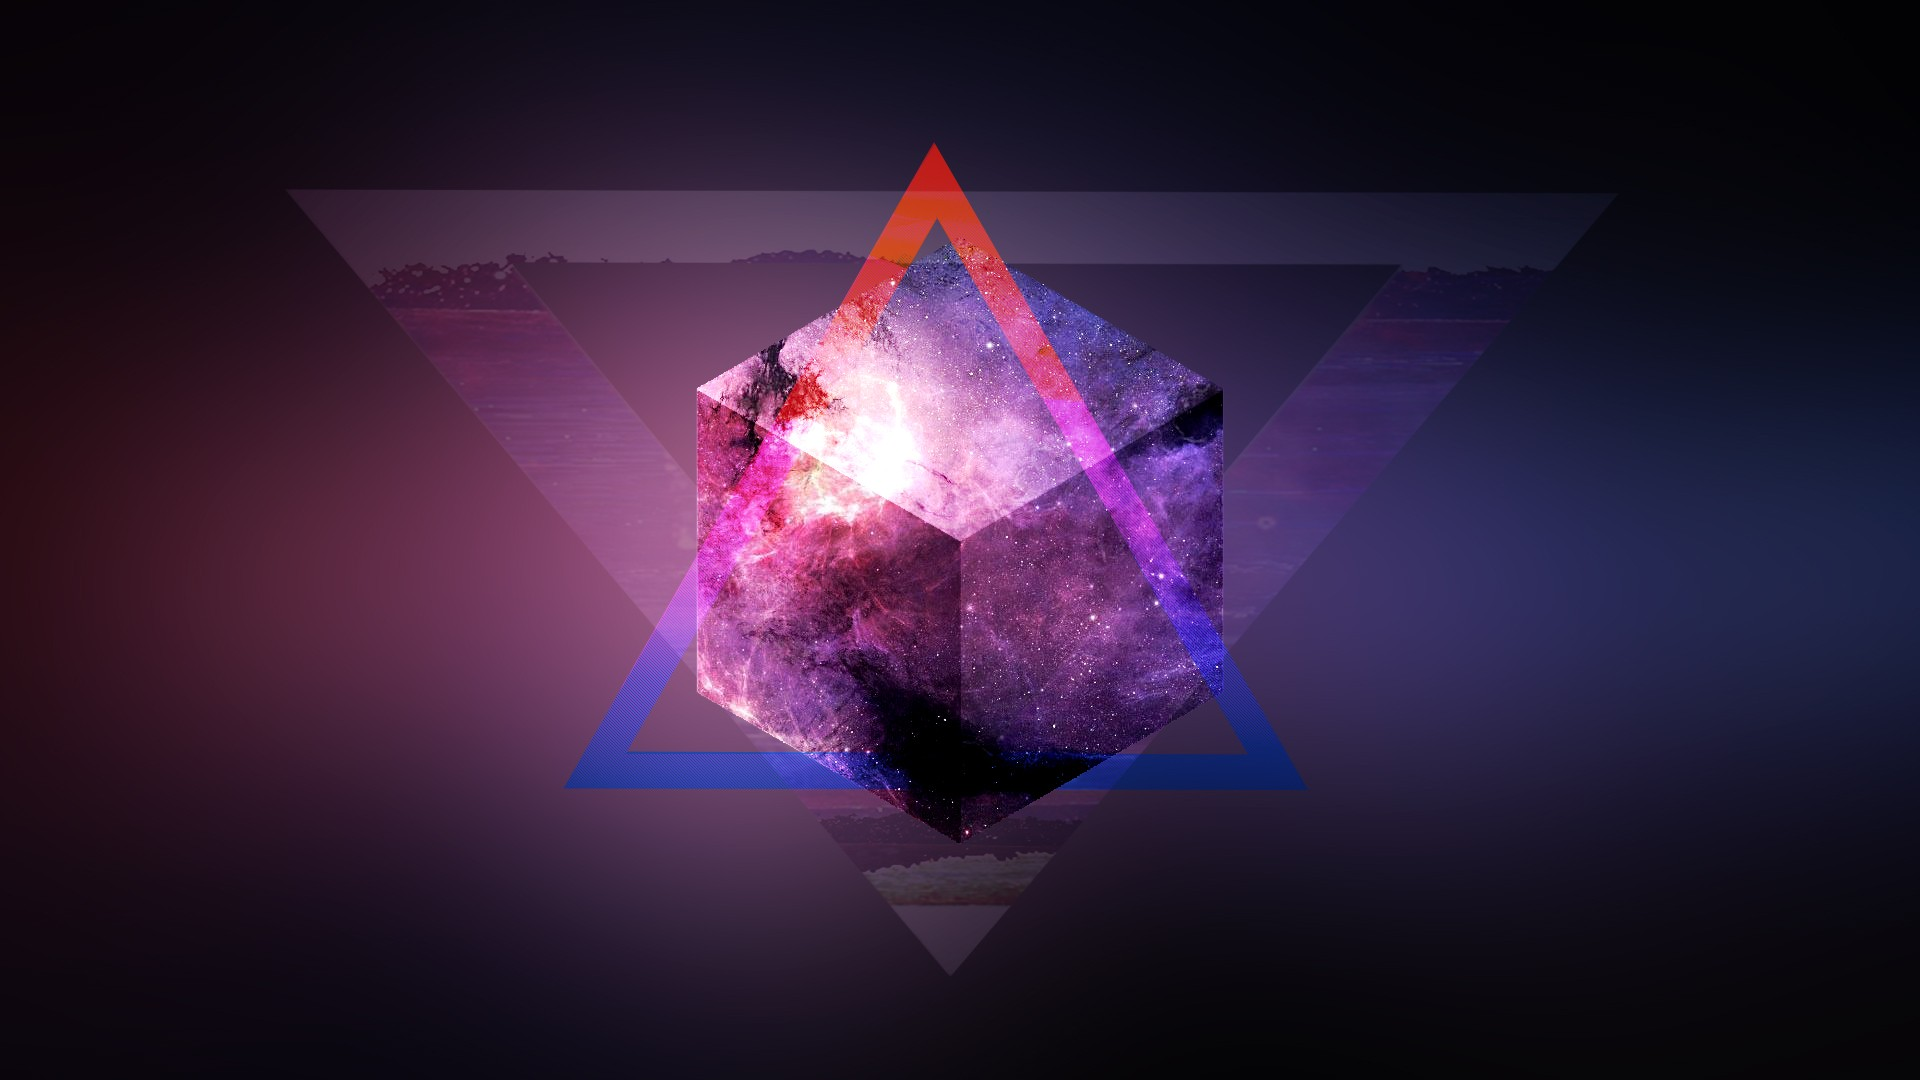 General 1920x1080 space mix up purple triangle blurred 3D